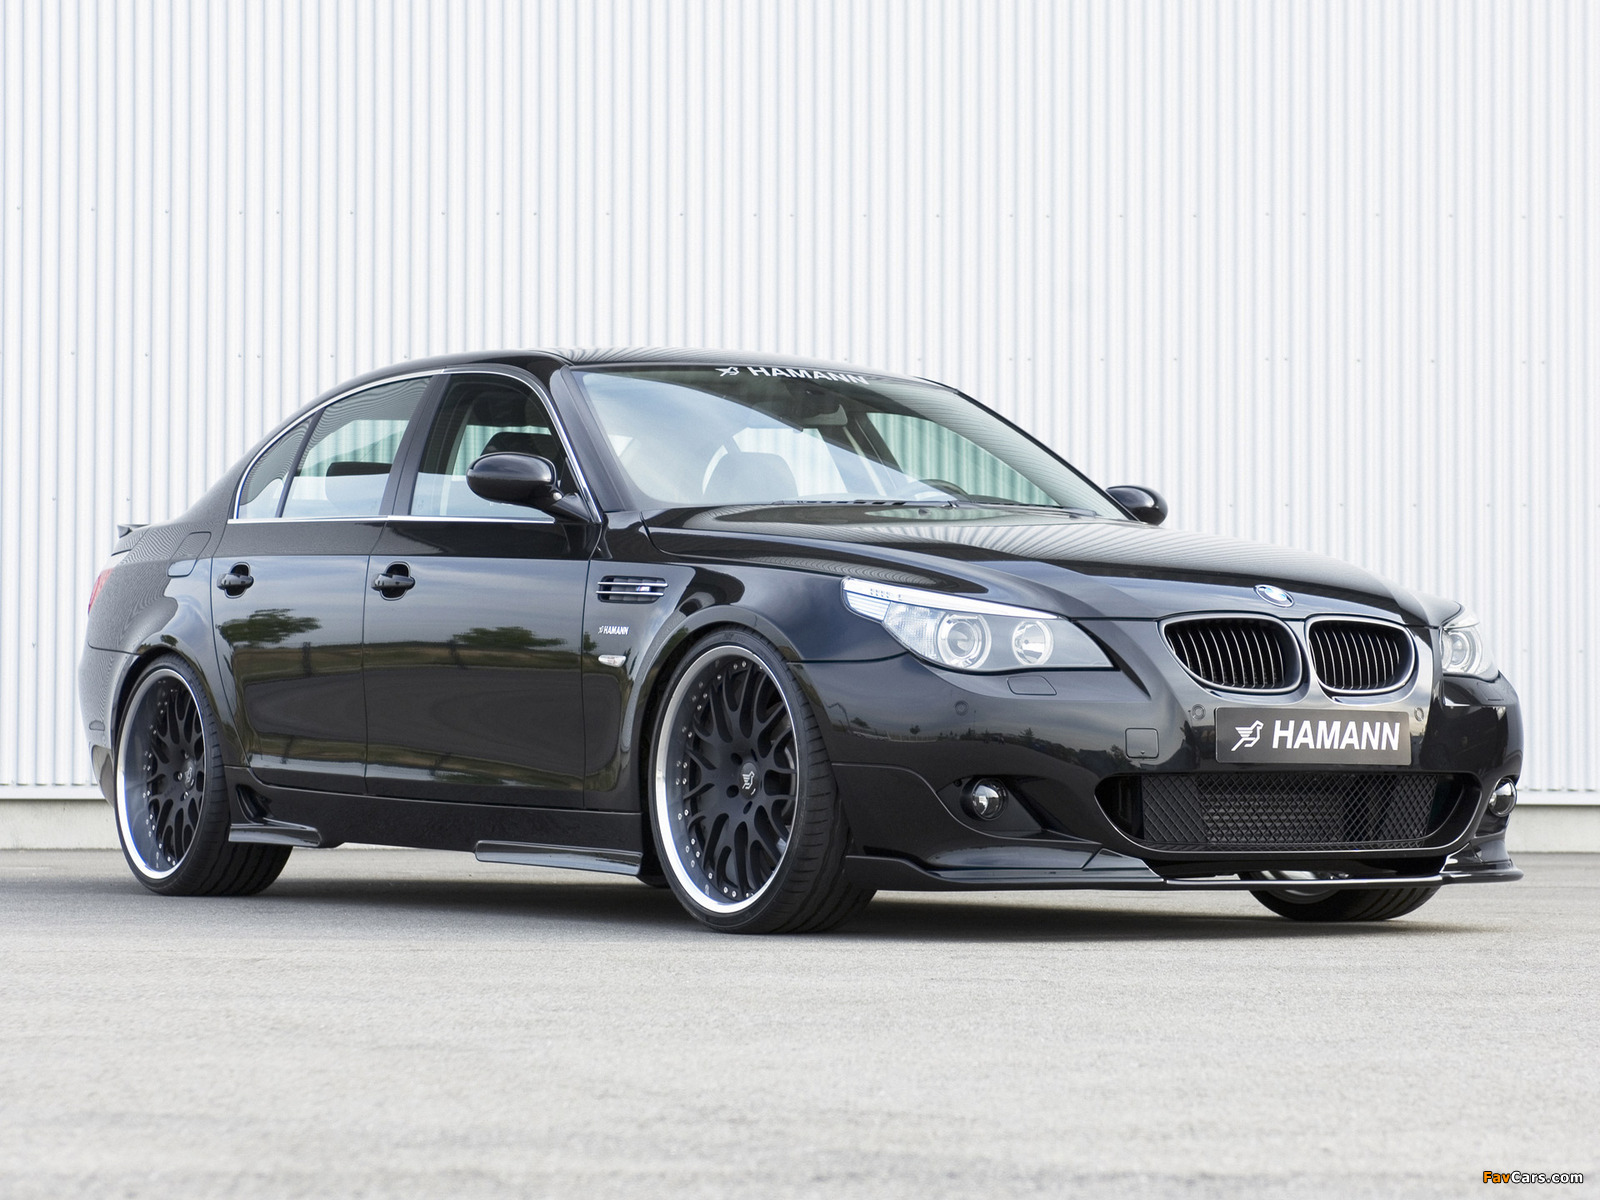 Images Of Hamann Bmw M5 E60 1600x1200